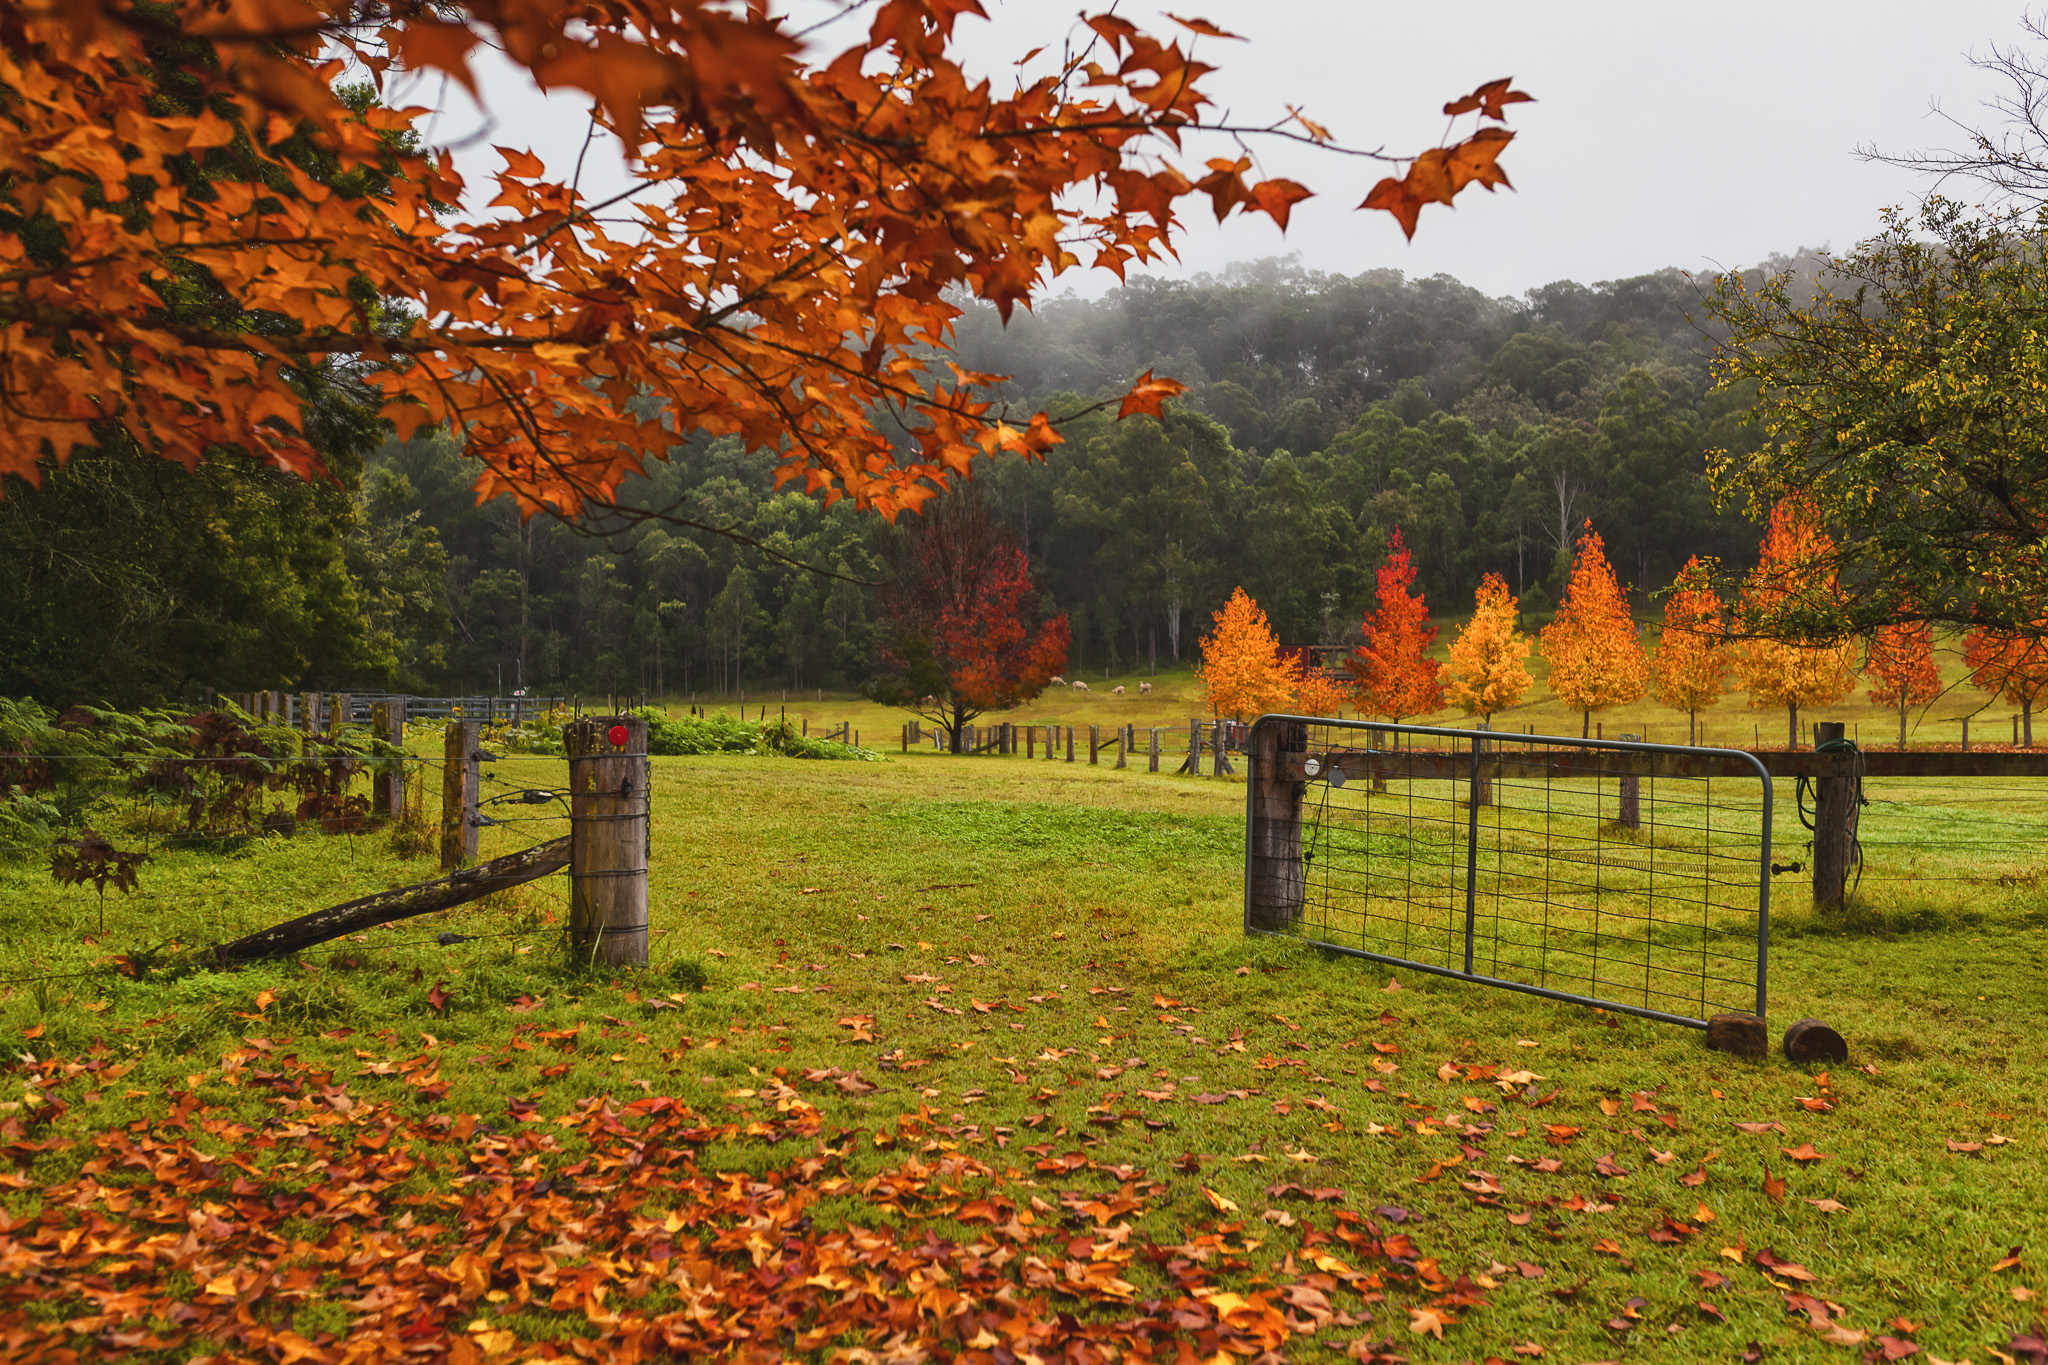 Tree change occurs Autumn so make the most of this beautiful farm in the Hunter Valley.  Book airbnb   https://www.airbnb.com.au/rooms/16481553?s=51